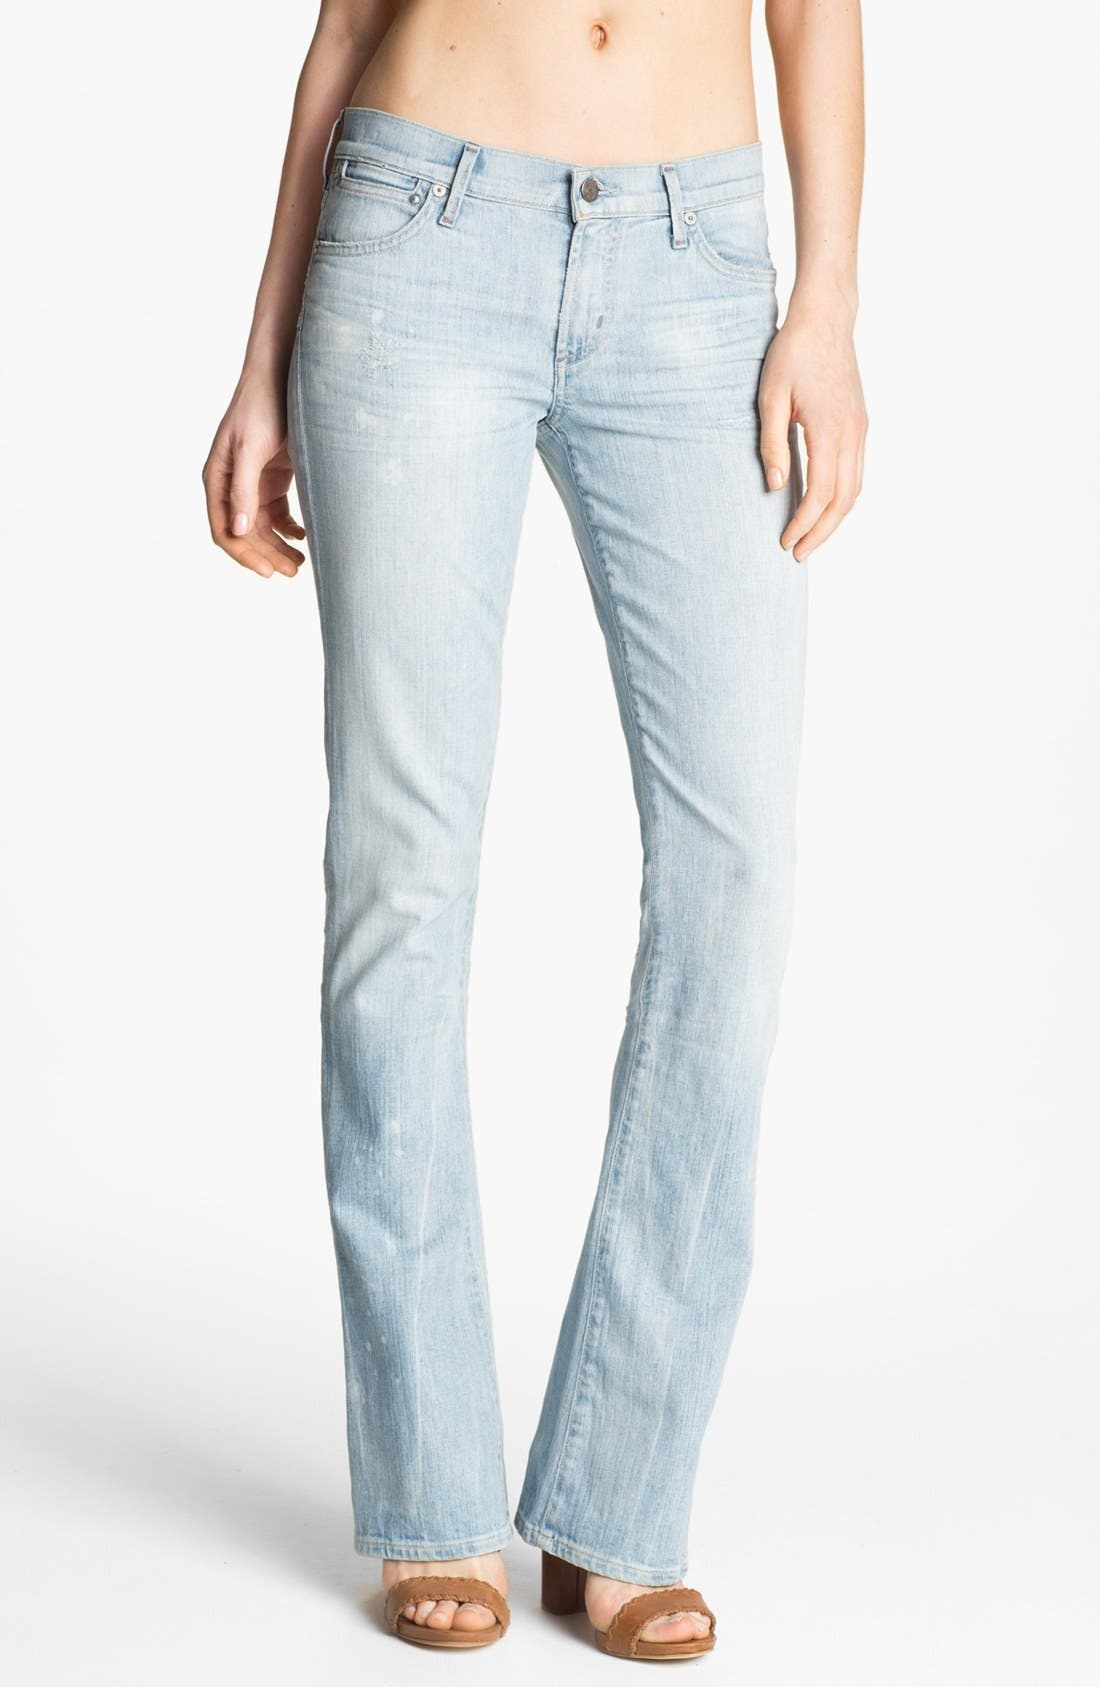 Alternate Image 1 Selected - Citizens of Humanity 'Emanuelle' Slim Bootcut Jeans (Sorbet)